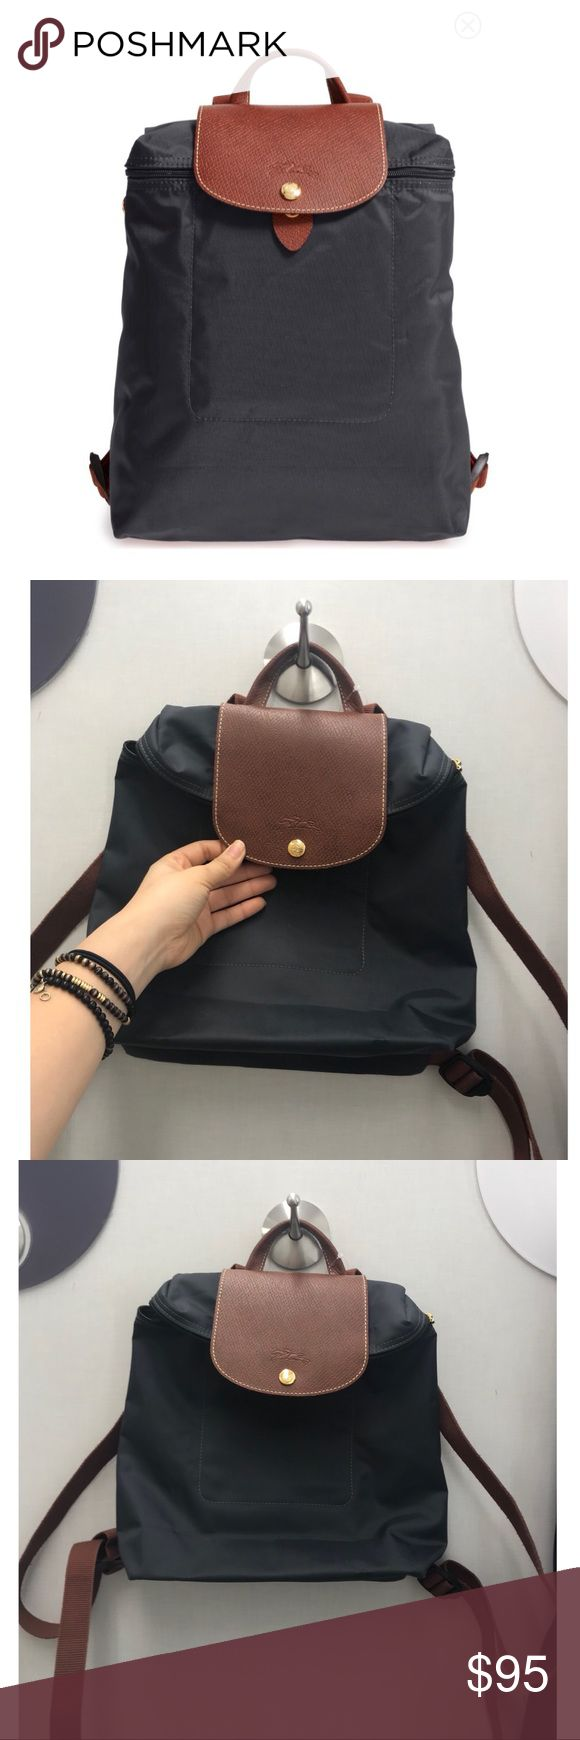 """Long champ backpack gray Gray. Never worn. Given to me as a gift. From Nordstrom rack, the price tag says """"altered or refinished"""" but could not find anything different from the stock images or measurements. Longchamp Bags Backpacks"""